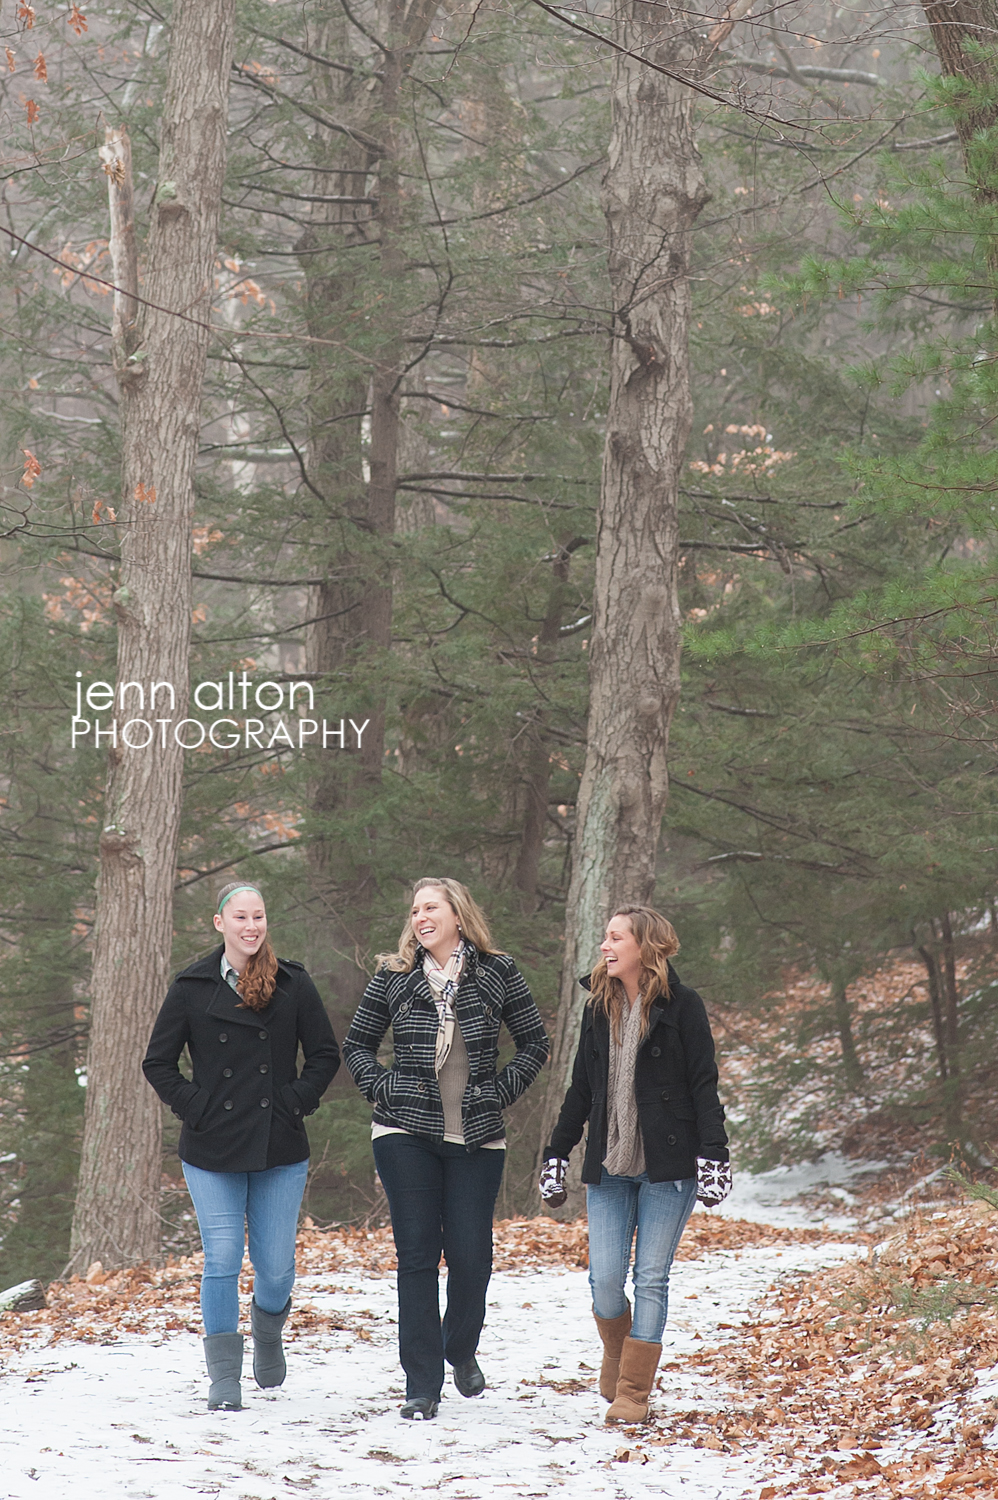 Three sisters natural outdoor portrait pose, Maudsley Park, Newburyport, MA